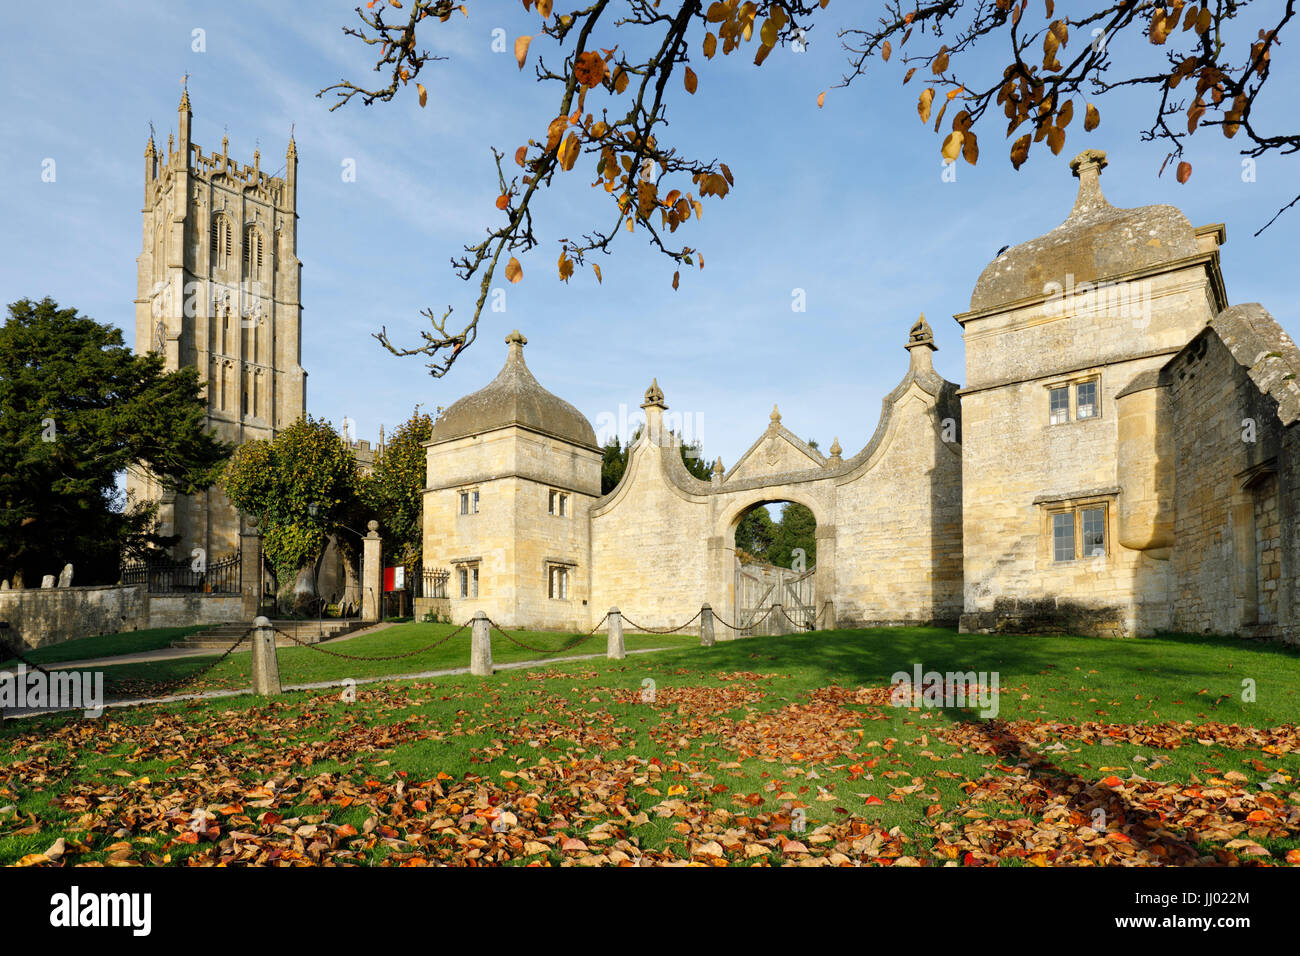 Gatehouse of Campden House and St James church, Chipping Campden, Cotswolds, Gloucestershire, England, United Kingdom, - Stock Image